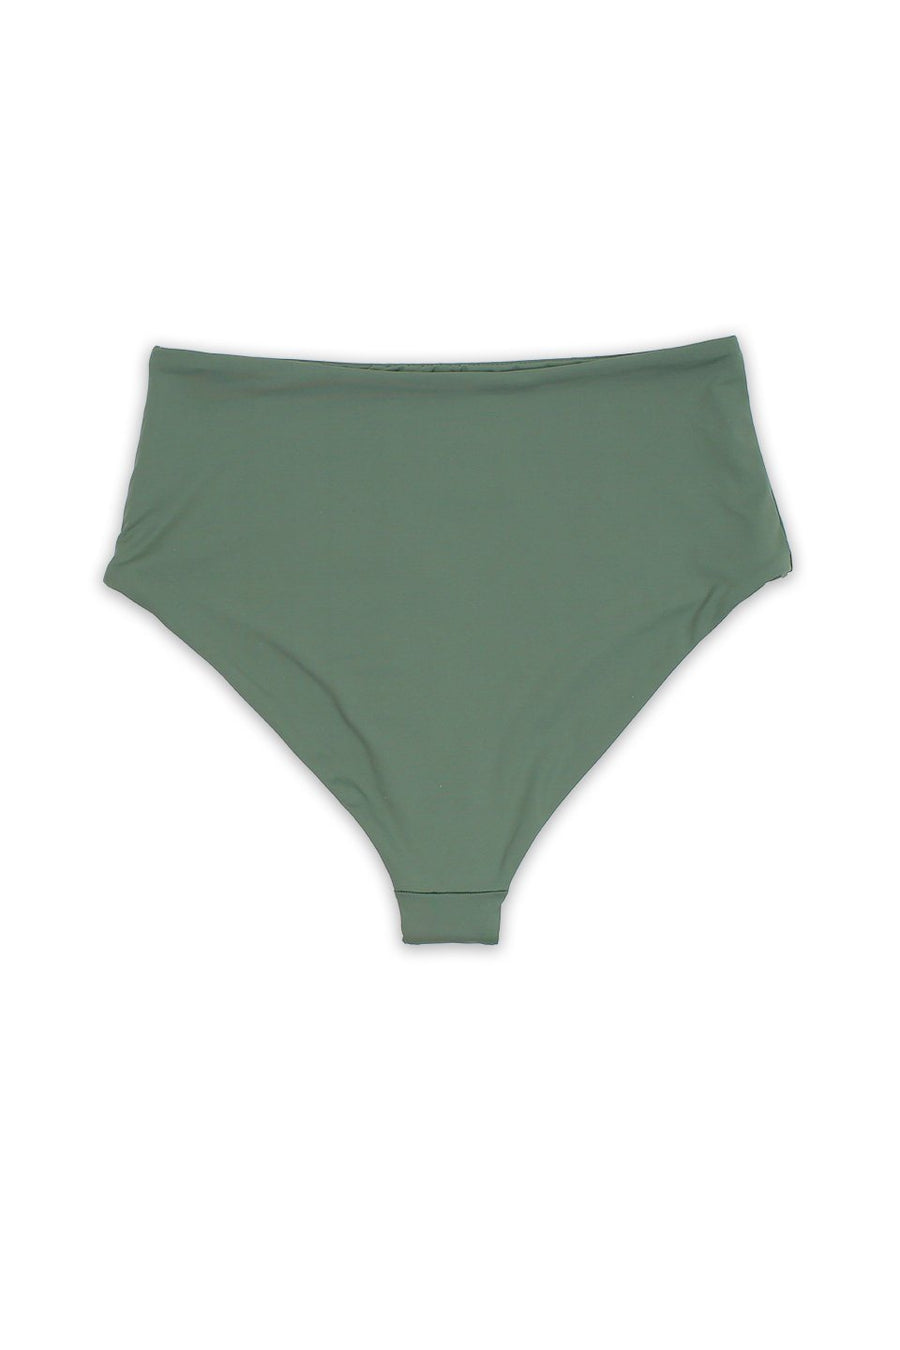 Solid Avocado Womens Seamless Moderate Coverage High Waist Bottom - Front - Dippin' Daisy's